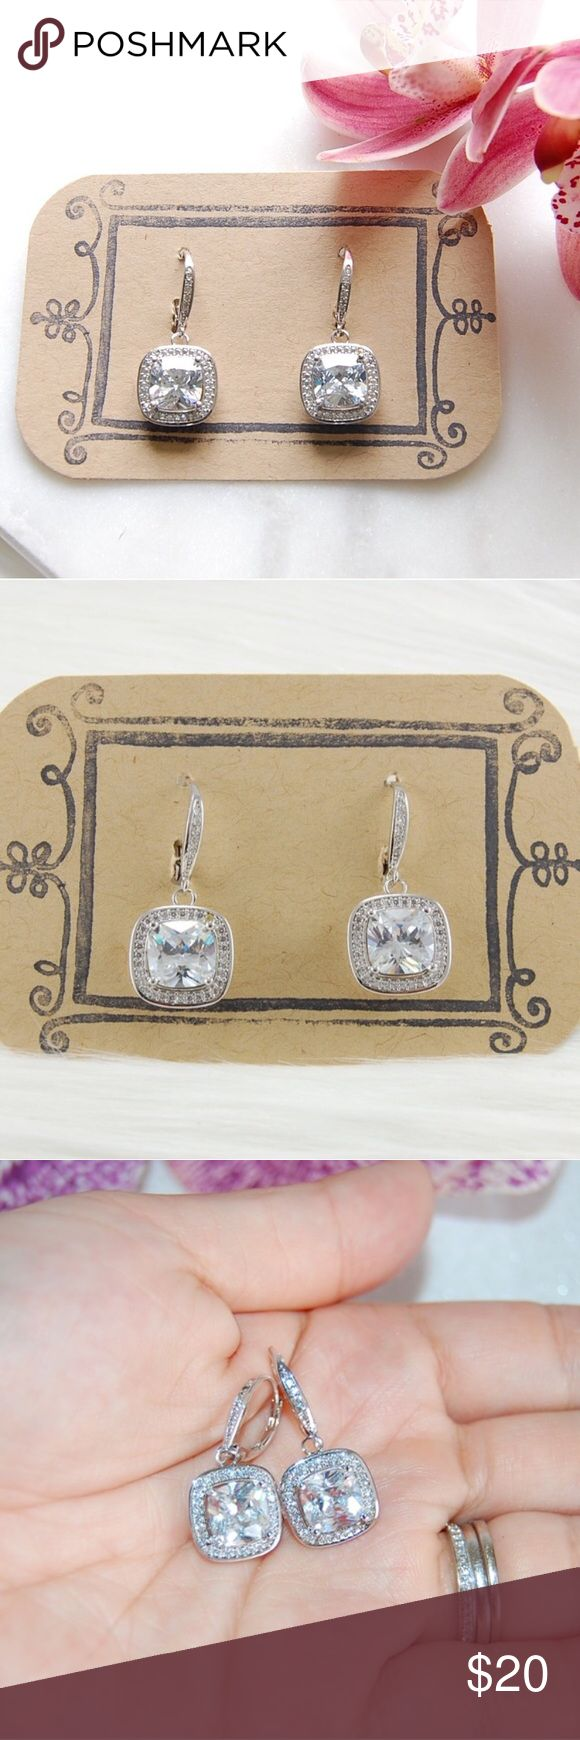 Dangling CZ Earrings | Cushion Cut Beyond stunning cushion cut cubic zirconia earrings. Perfect for any occasion! Large CZ is 4.4 karats and is surrounded by more CZs. French clip clasp (for pierced ears) also has a line of CZs. Hangs about an inch long. Dangling portion is 12mm x 12mm. Lead free. Includes box. Price firm unless bundled. {E3340}   Instagram: @bringingupsuns Jewelry Earrings